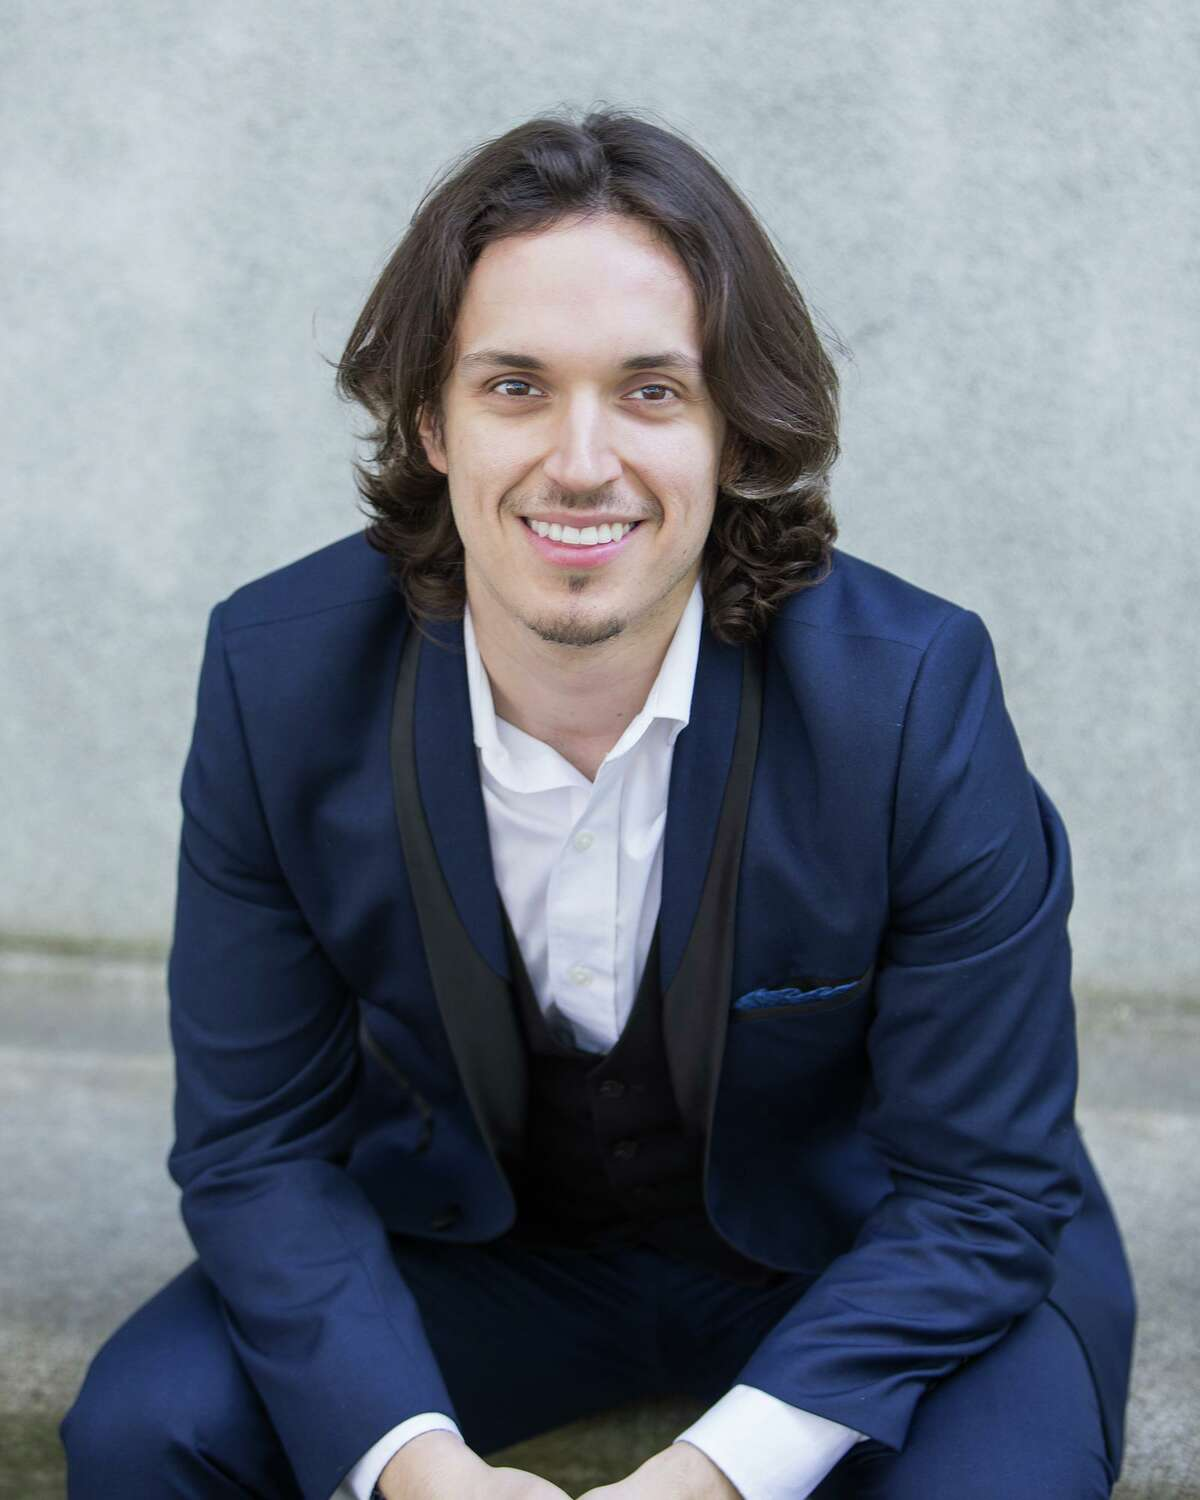 Polish-Canadian baritone Marcel Sokalski will perform at the Guilford concert.